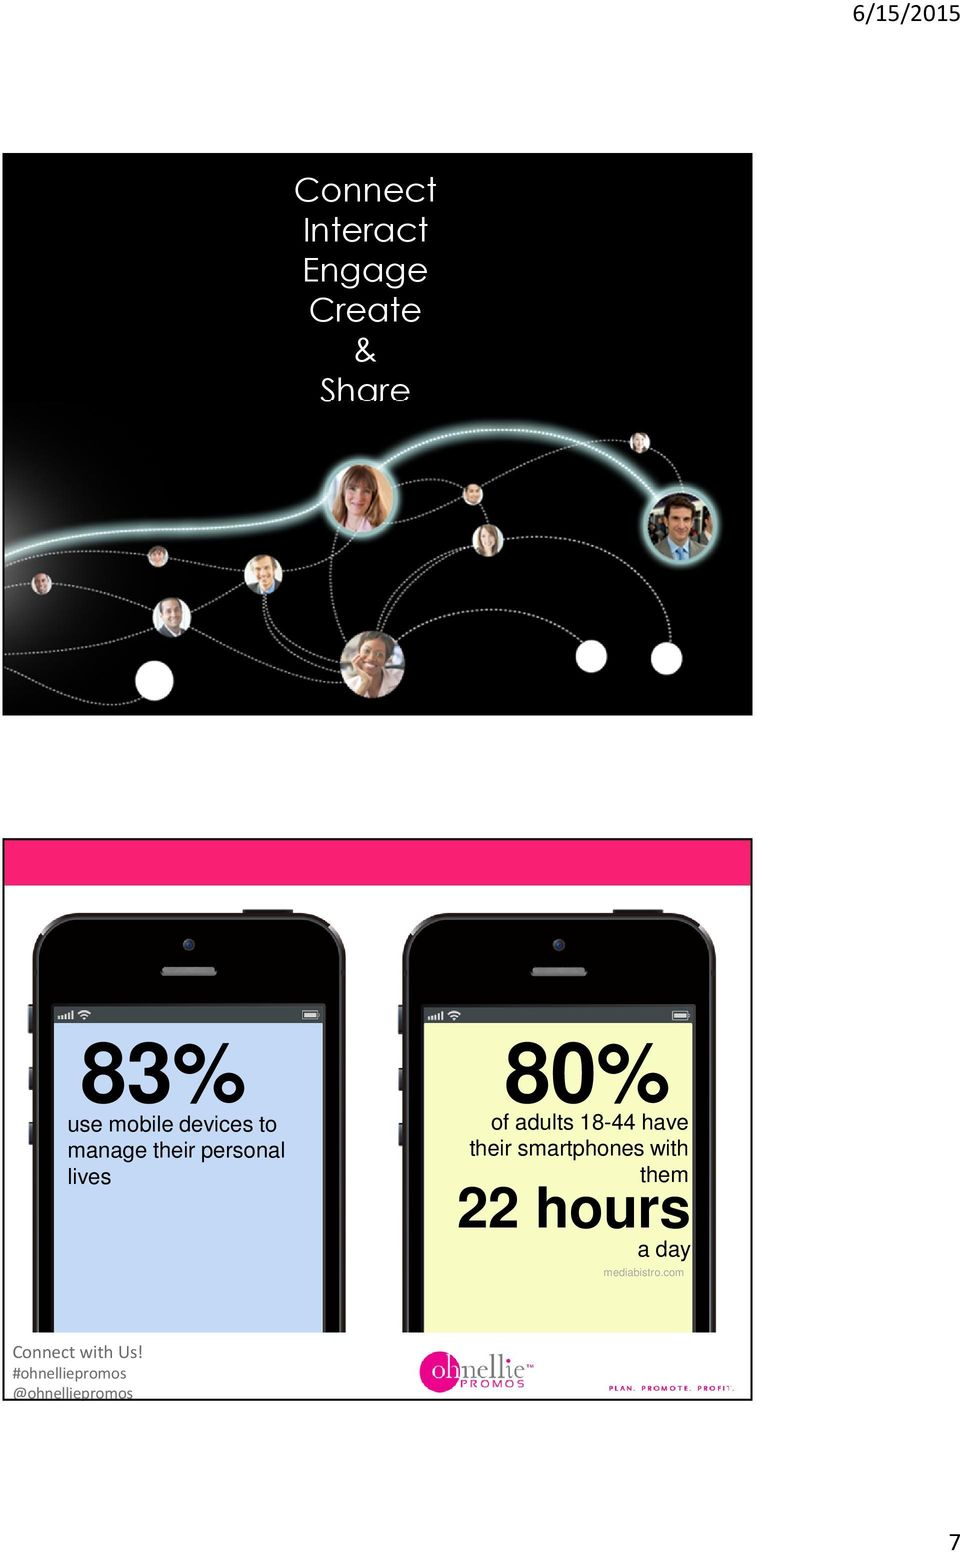 18-44 have their smartphones with them 22 hours a day